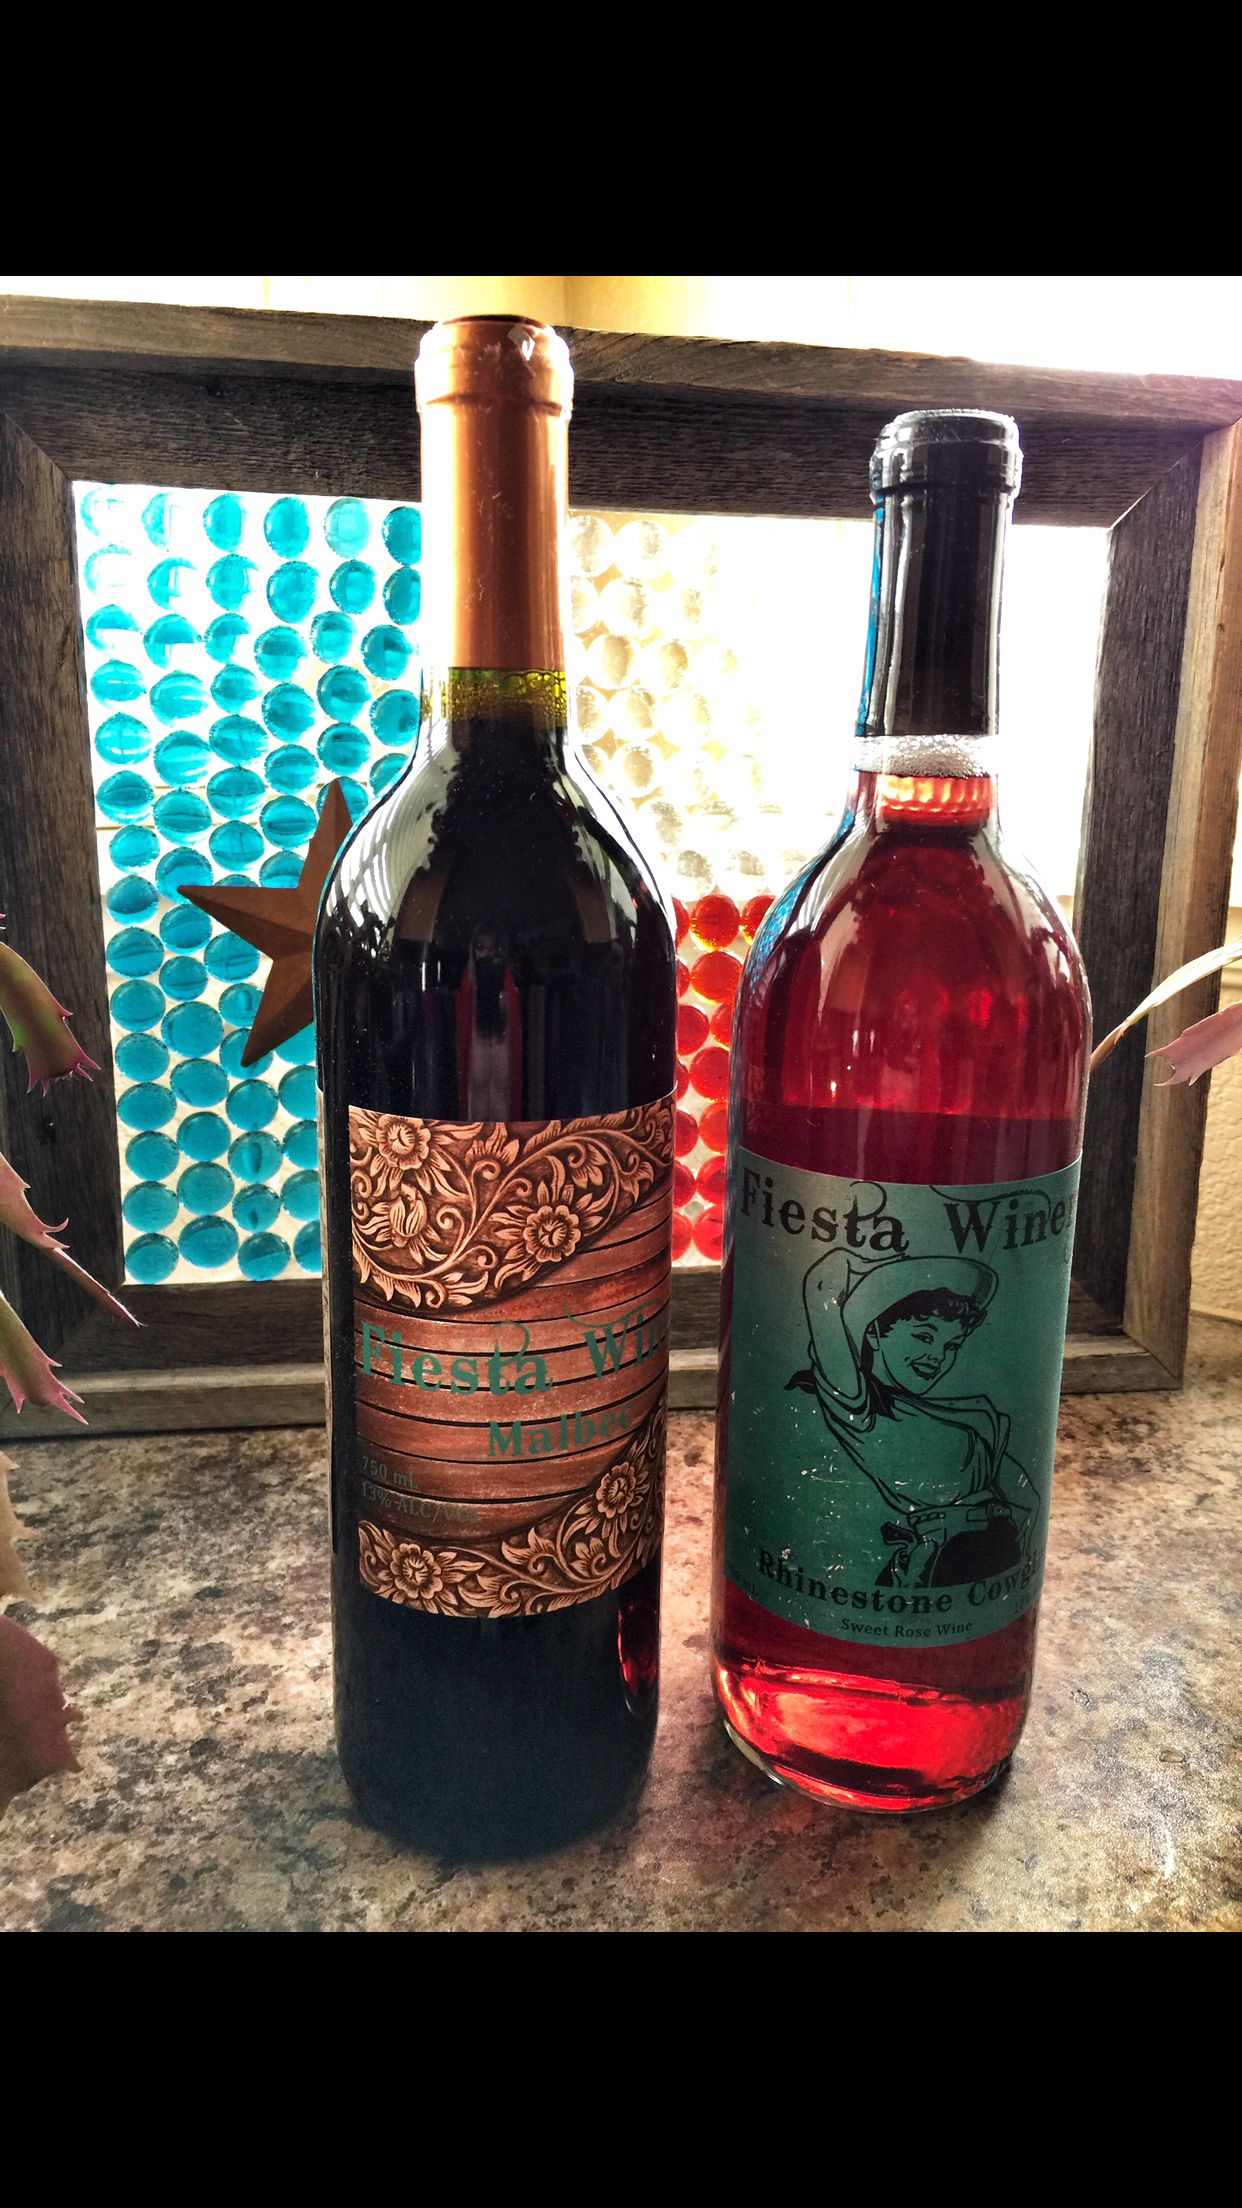 Fiesta Winery Malbec And Rhinestone Cowgirl Sweet Rose Wine Texans Drinkin Texas Wines In Colorado Texas Hill Country Wines Wine And Spirits Wines Malbec